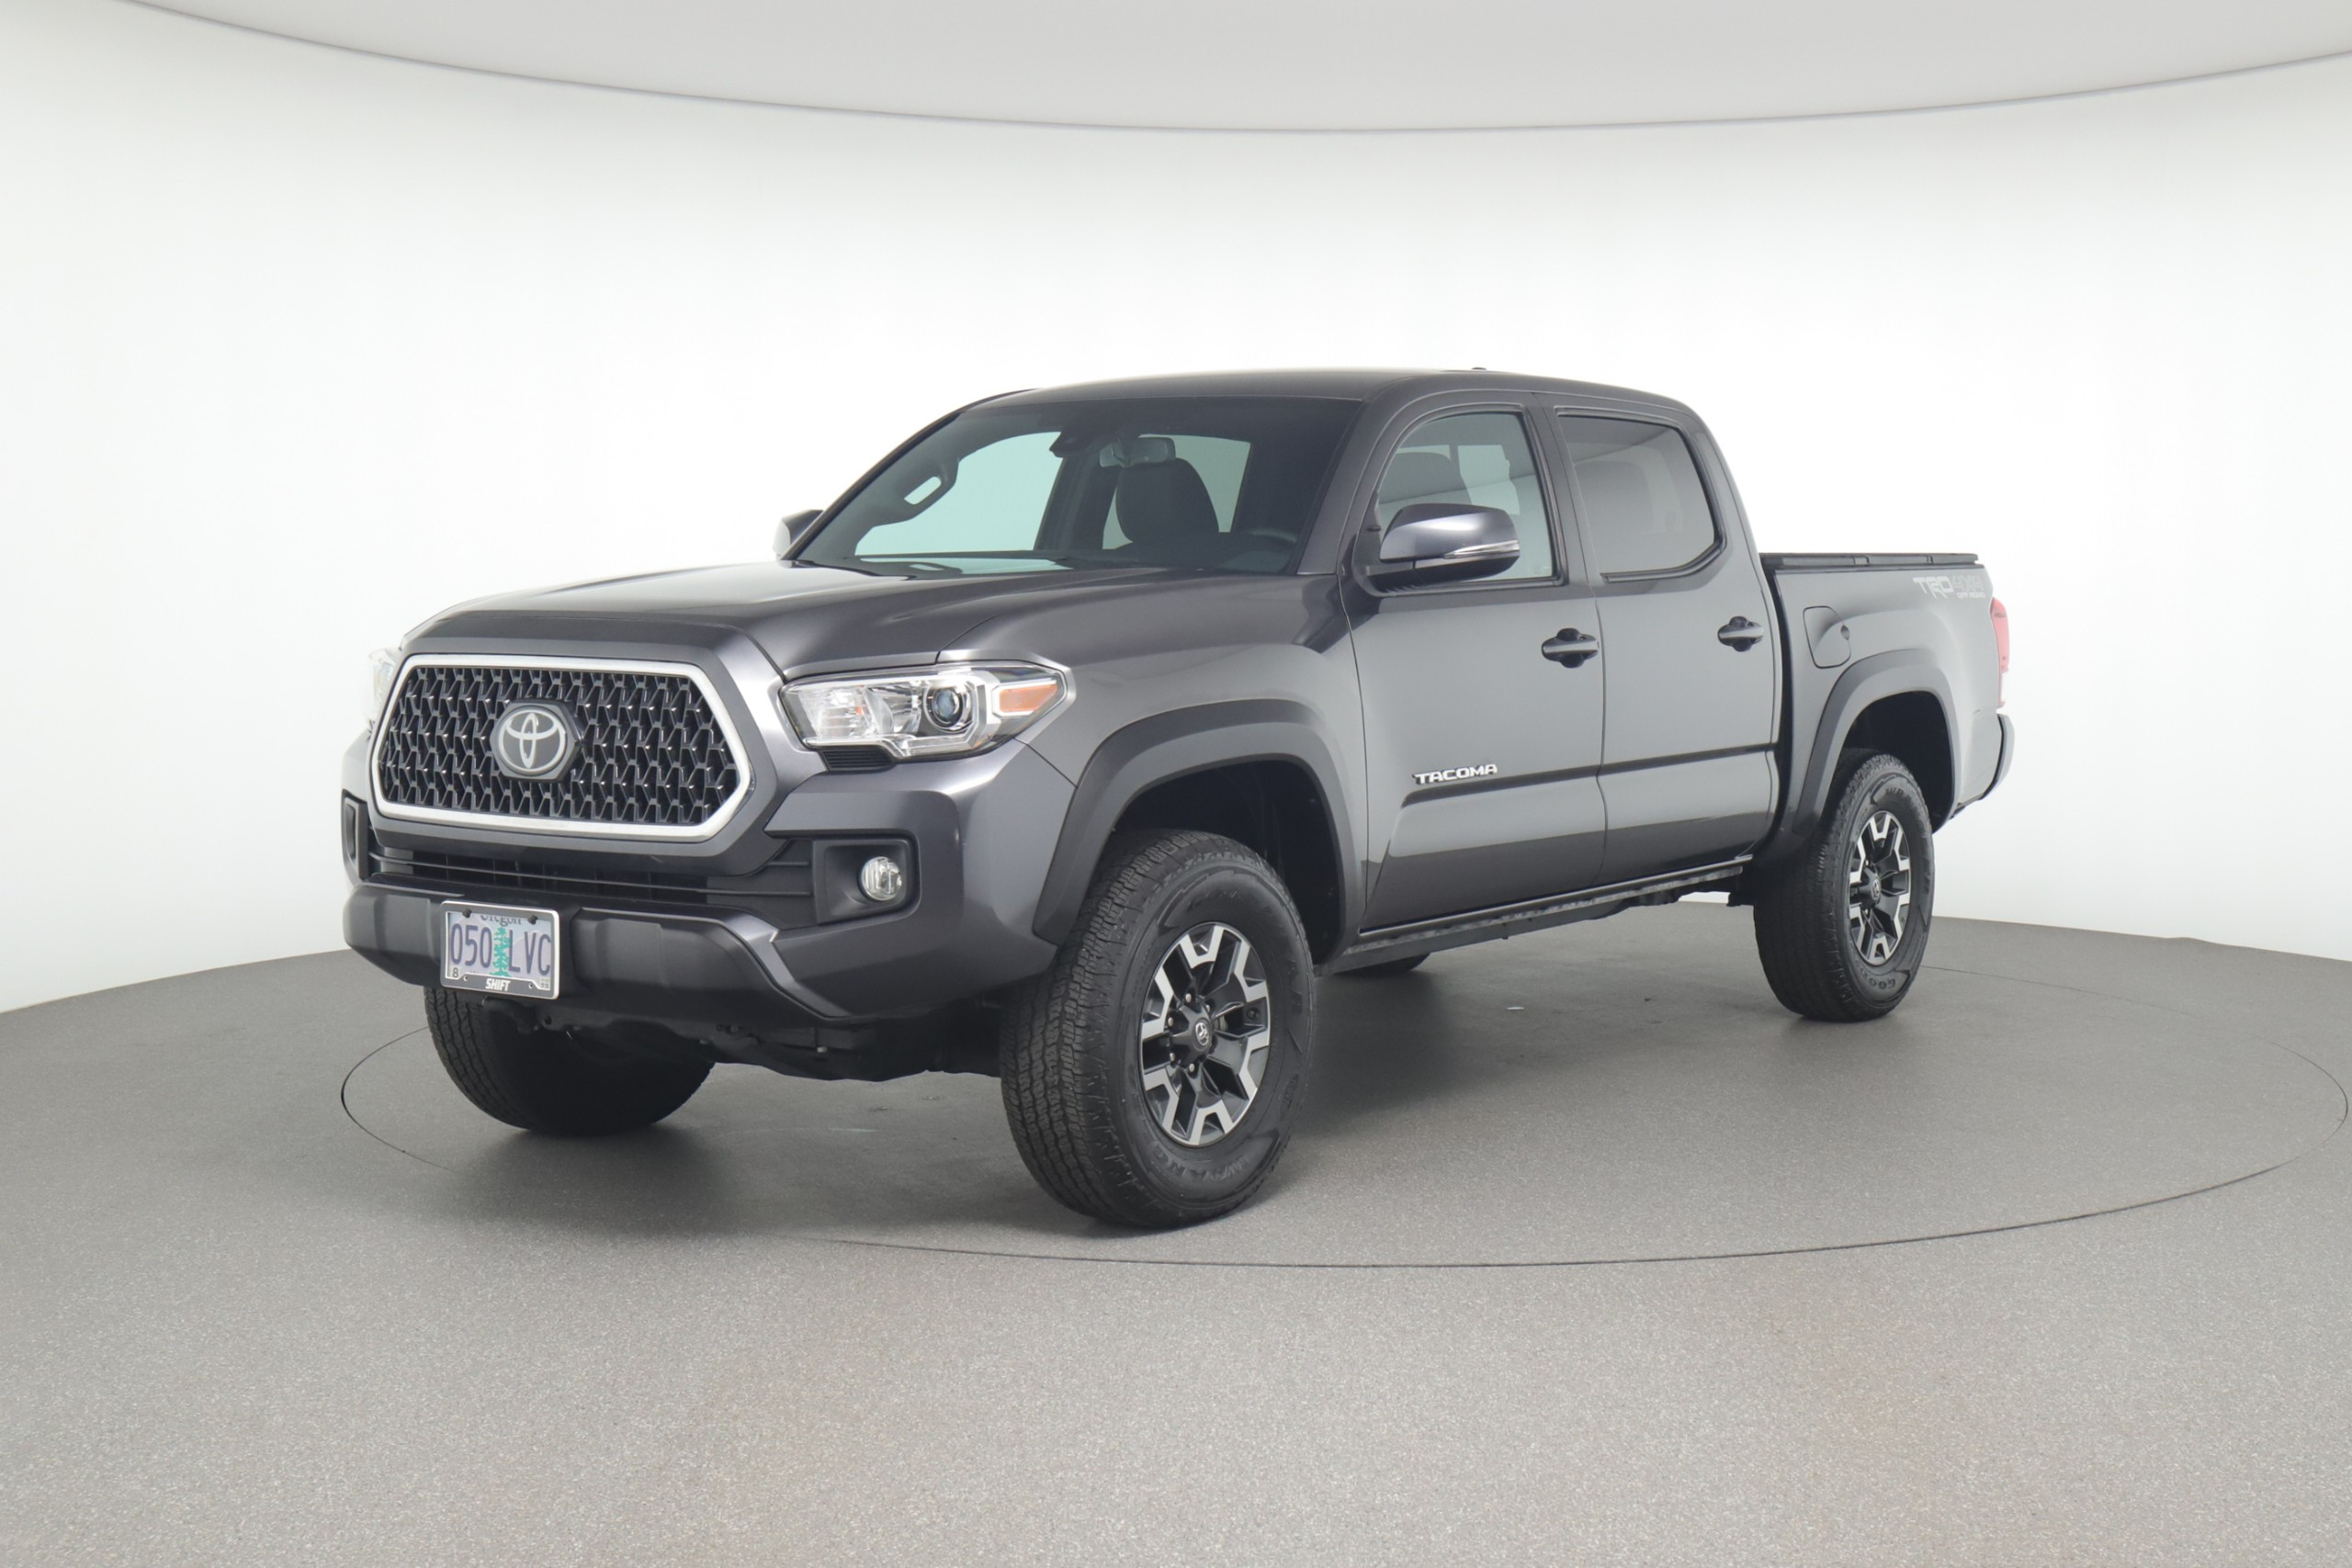 2019 Toyota Tacoma TRD Off Road (from $38,950)